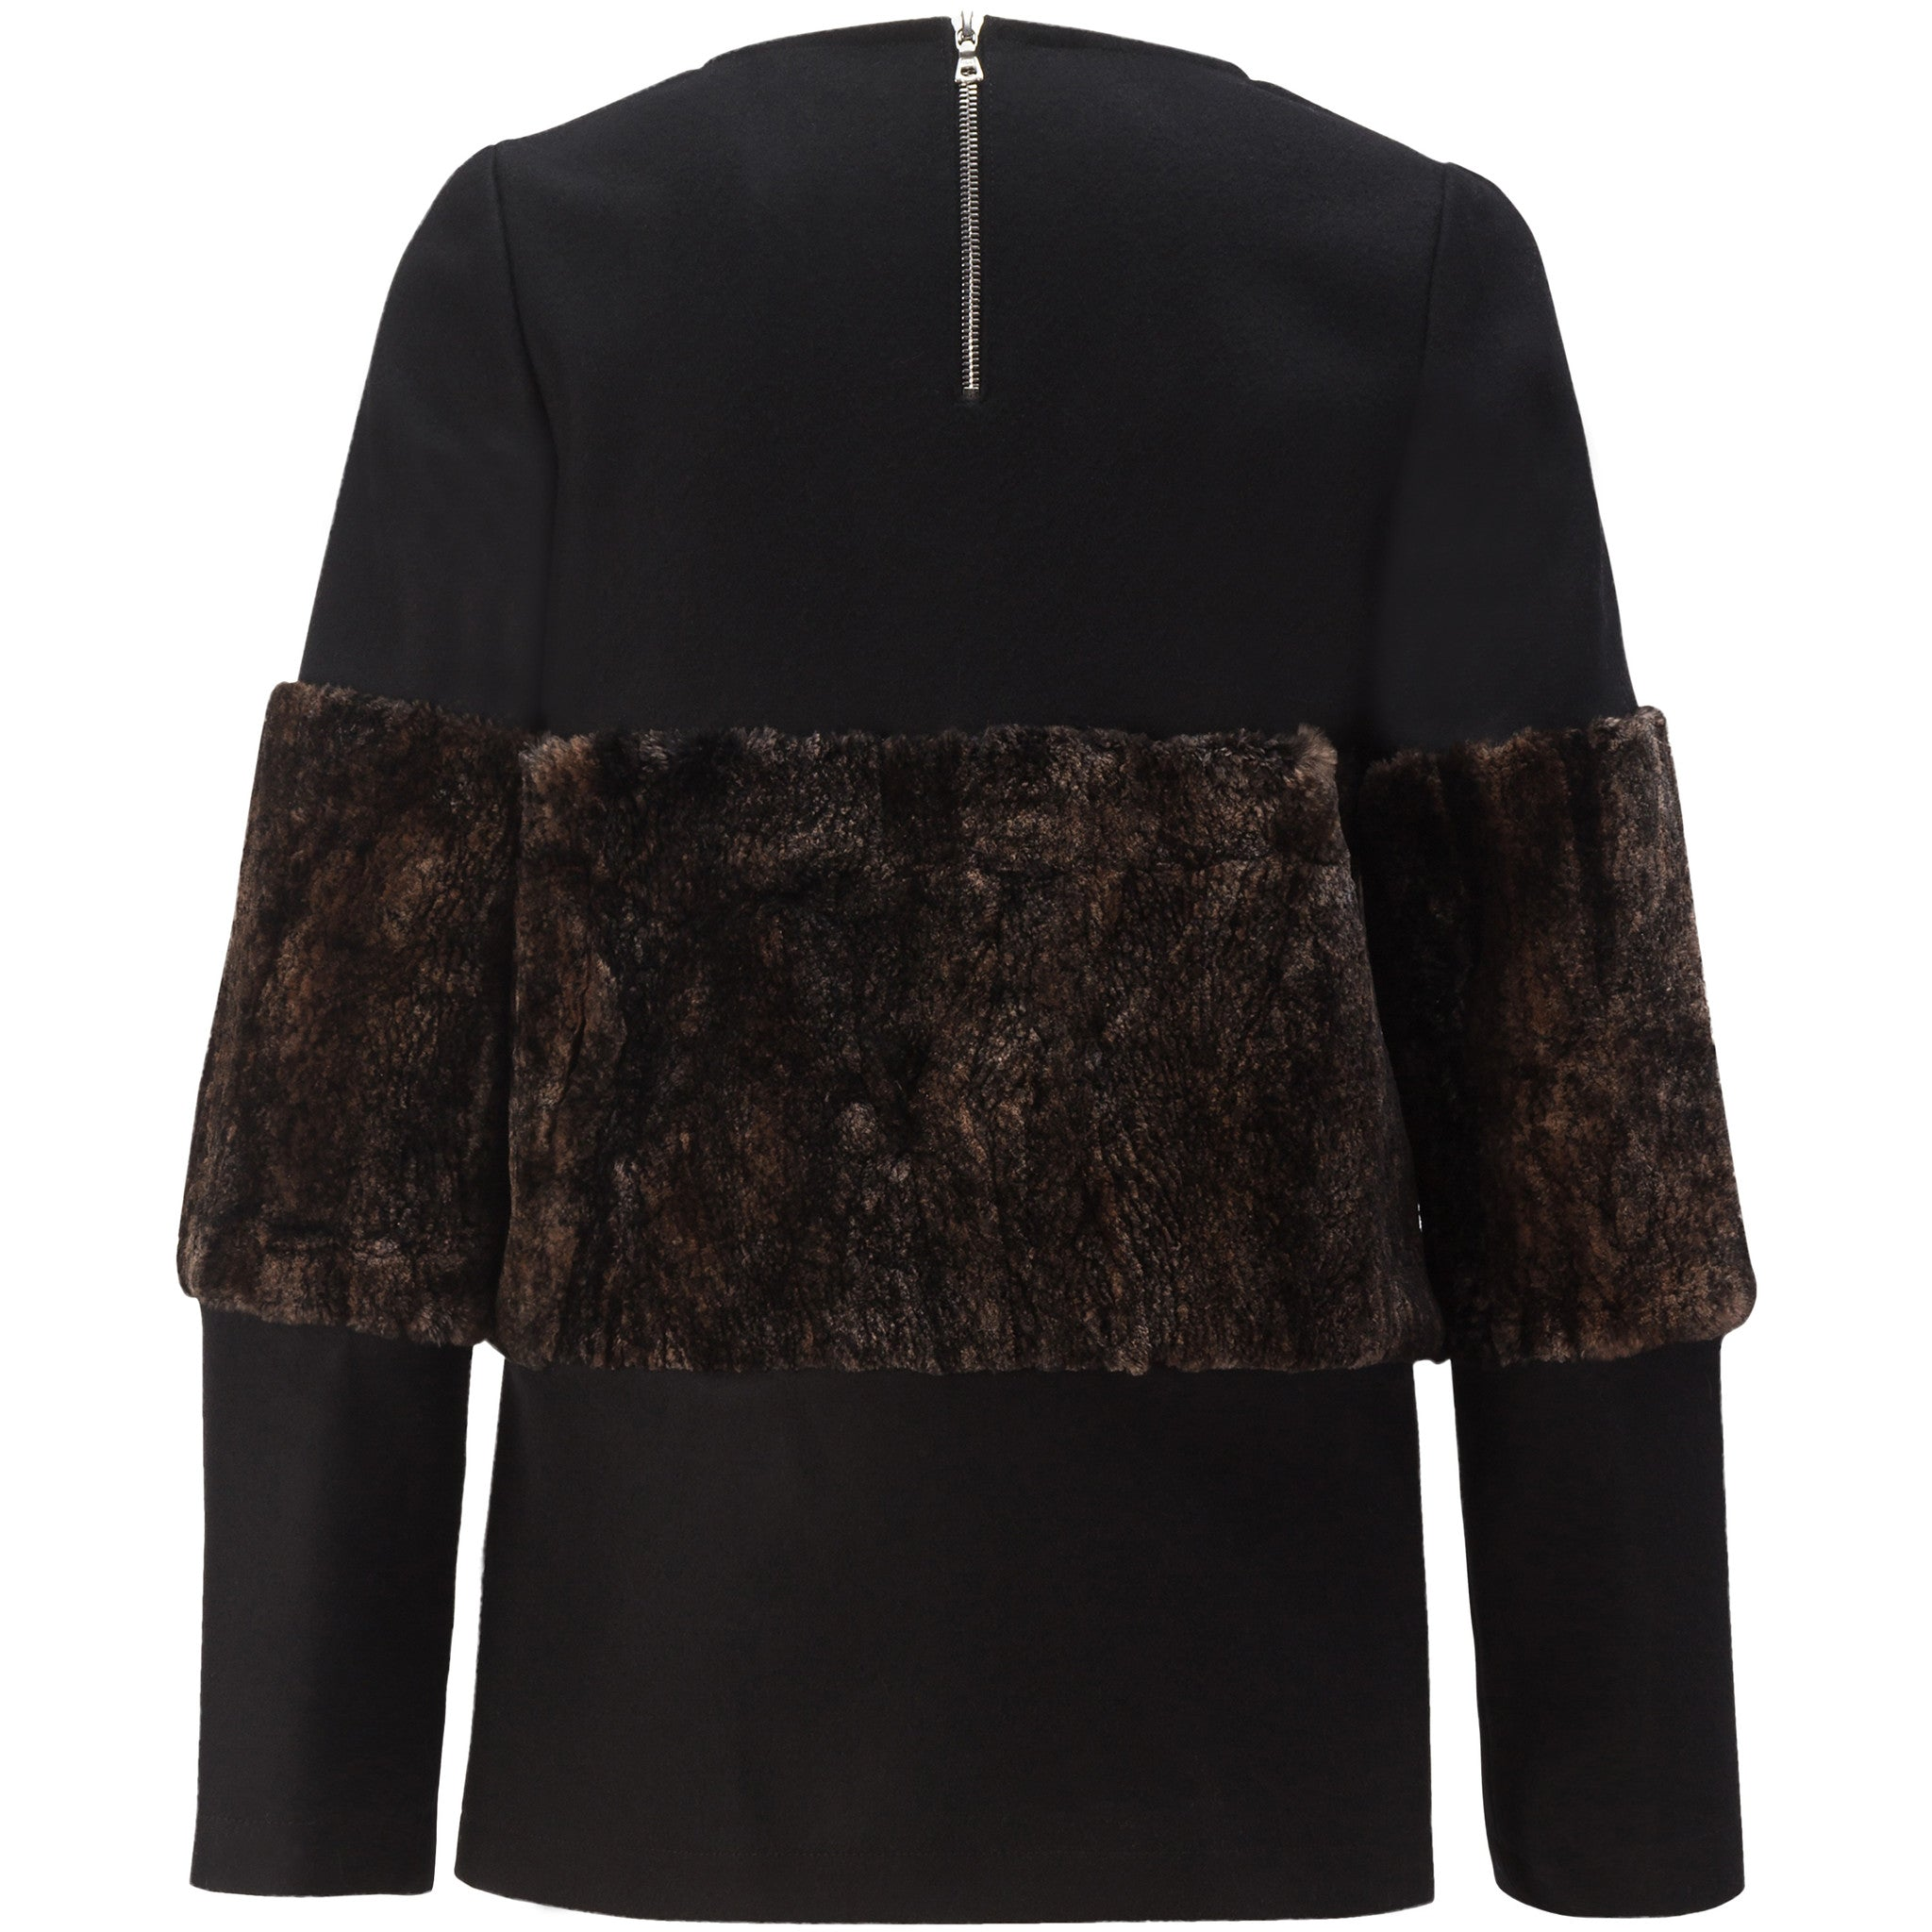 Wool Top With Fur Band